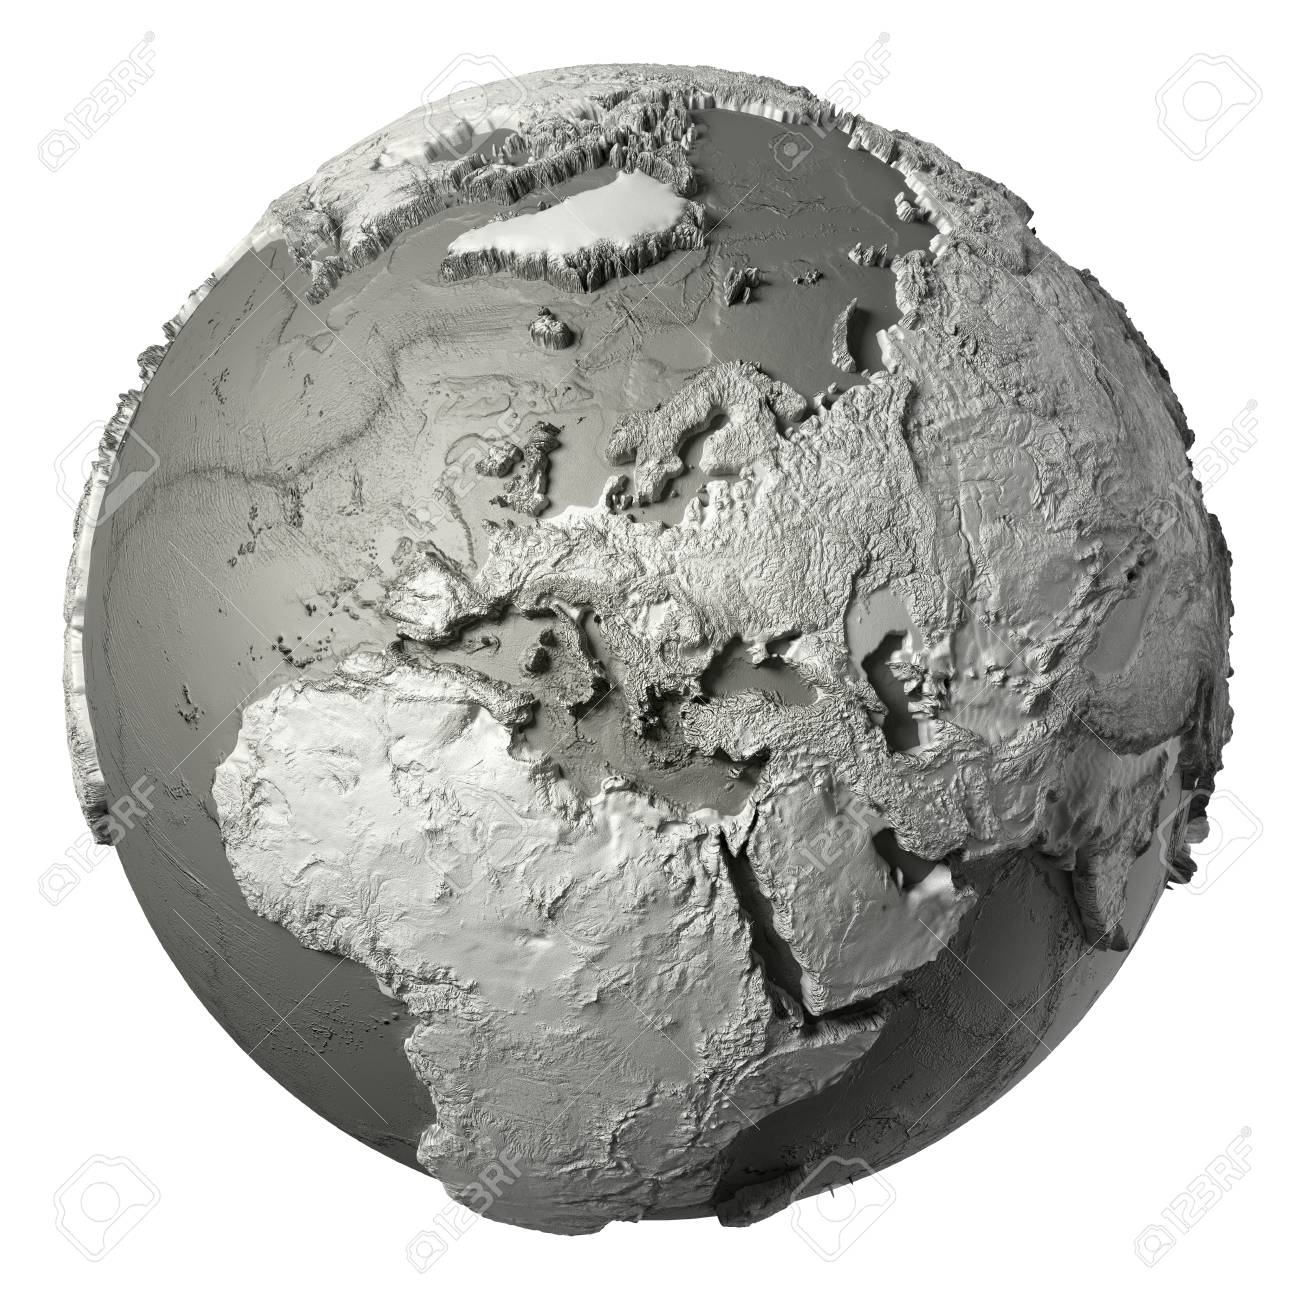 Globe model with detailed topography without water europe 3d globe model with detailed topography without water europe 3d rendering isolated on white background publicscrutiny Choice Image